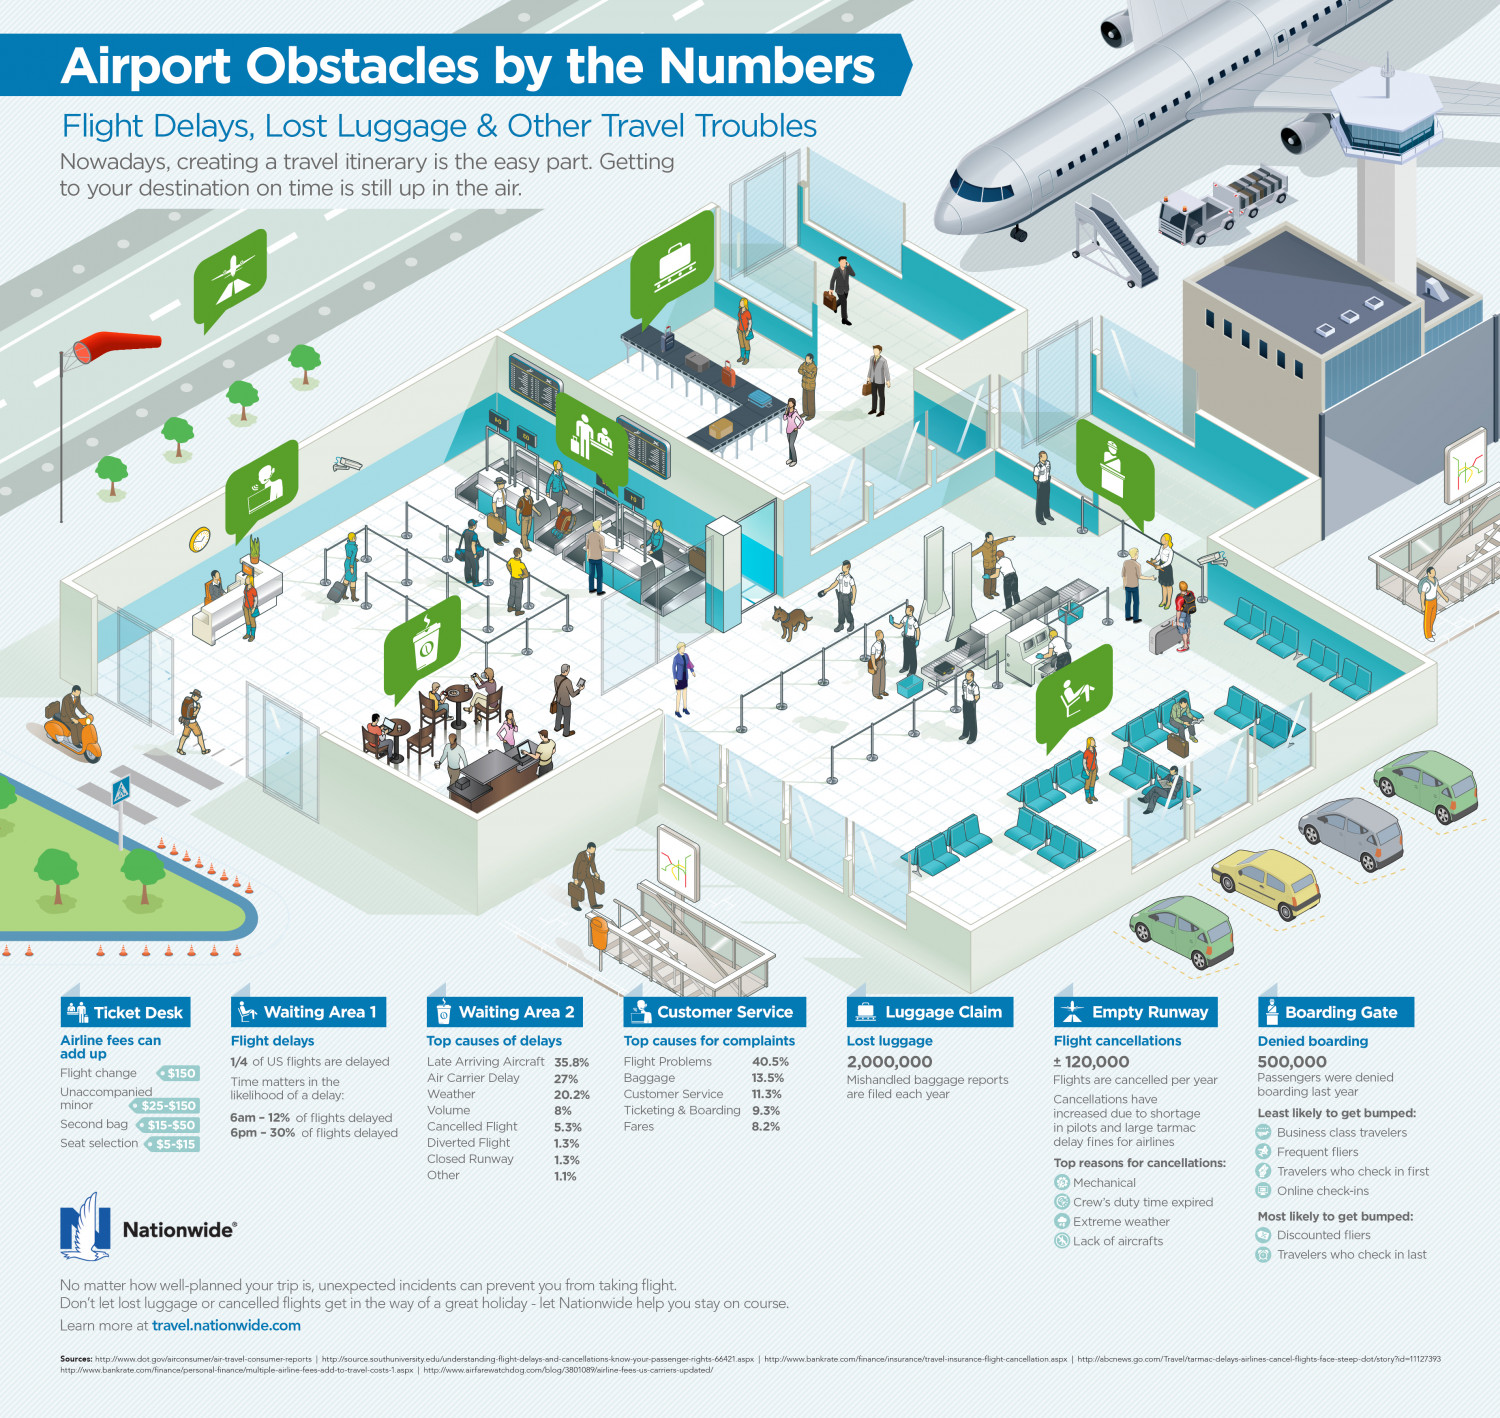 Airport Obstacles By the Numbers: Flight Delays, Lost Luggage & Other Travel Troublesk Infographic